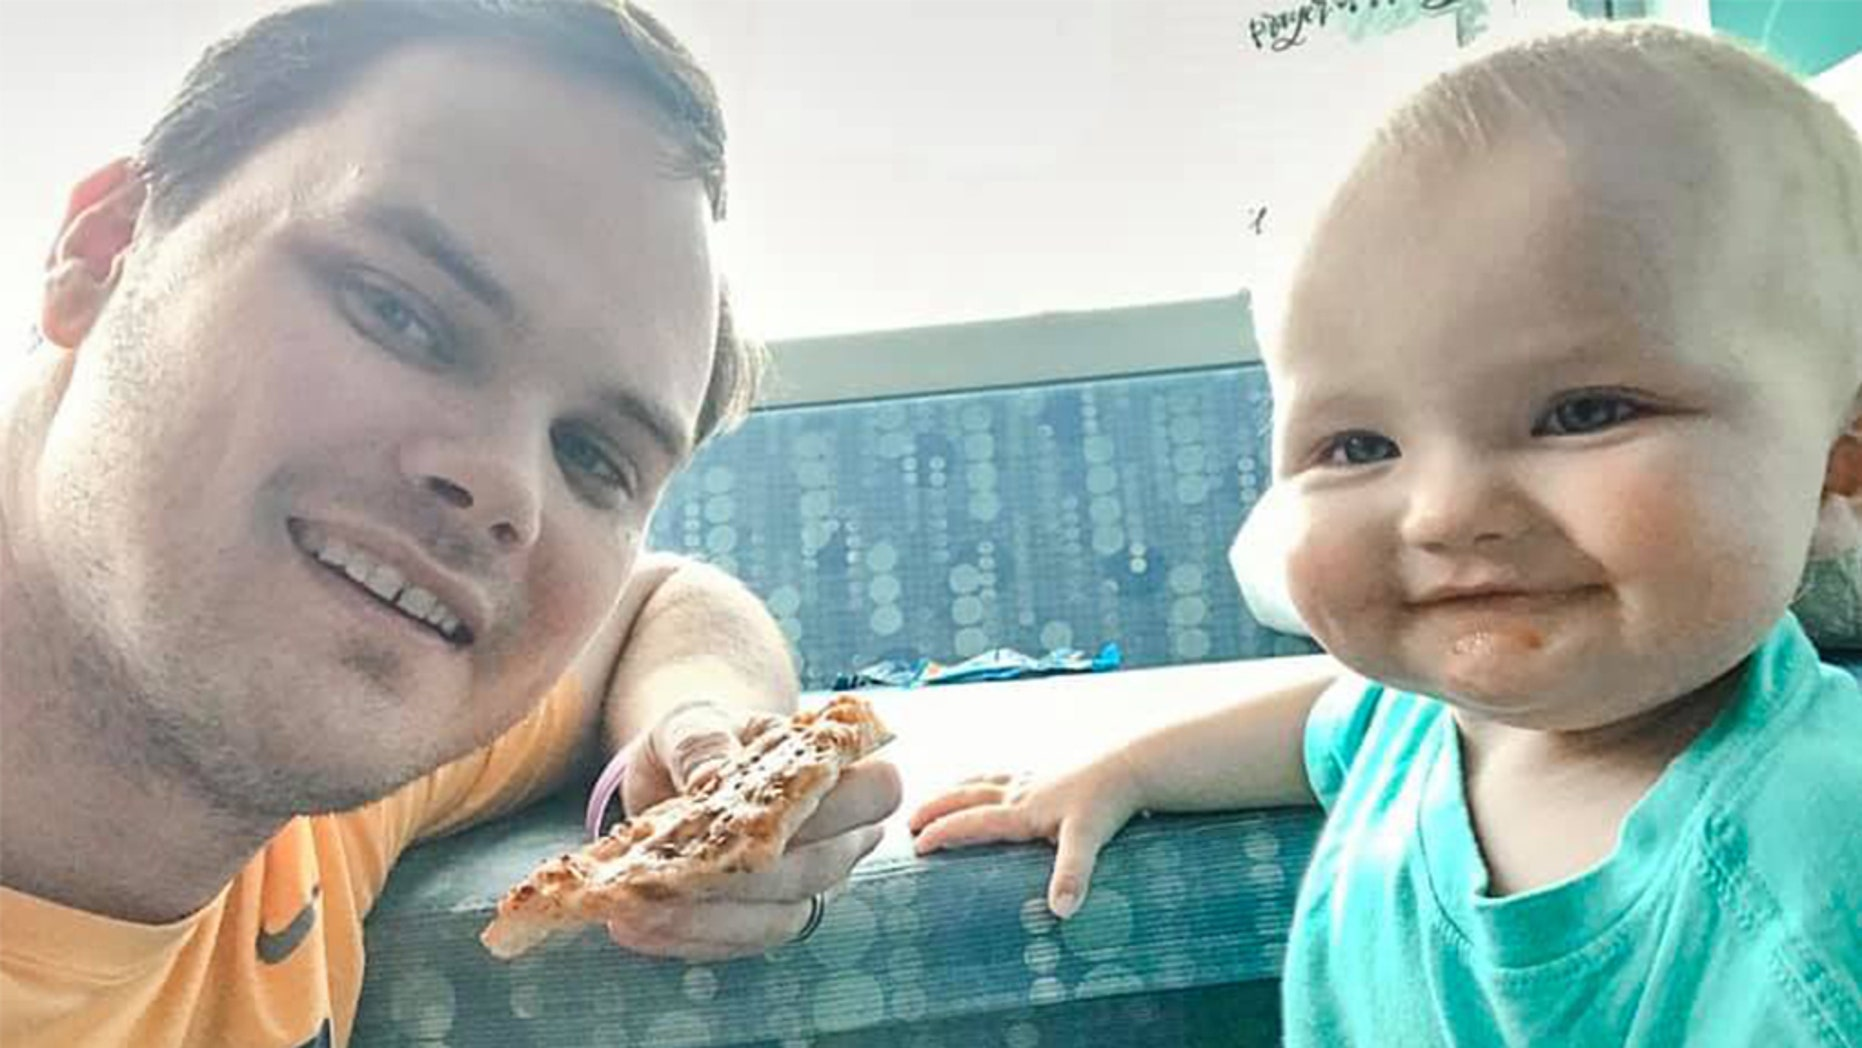 David Green received a generous gift from his colleagues after he ran out of sick days that would allow him to spend time with his daughter Kinsley, who is being treated for leukemia.